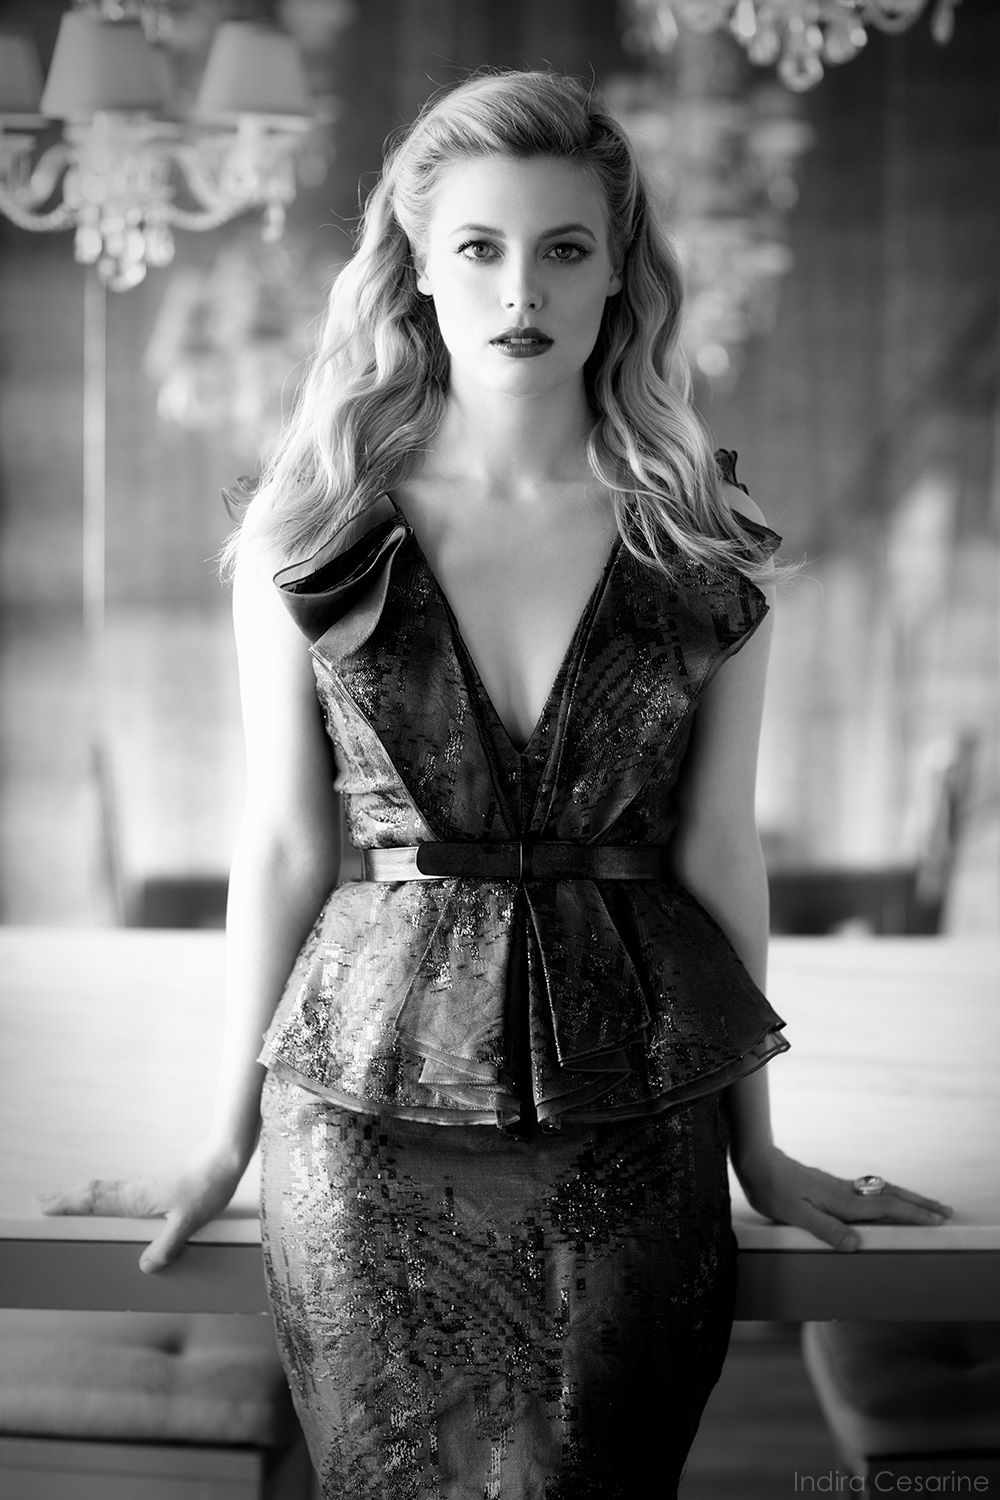 Gillian-Jacobs-Photography-by-Indira-Cesarine-002.jpg